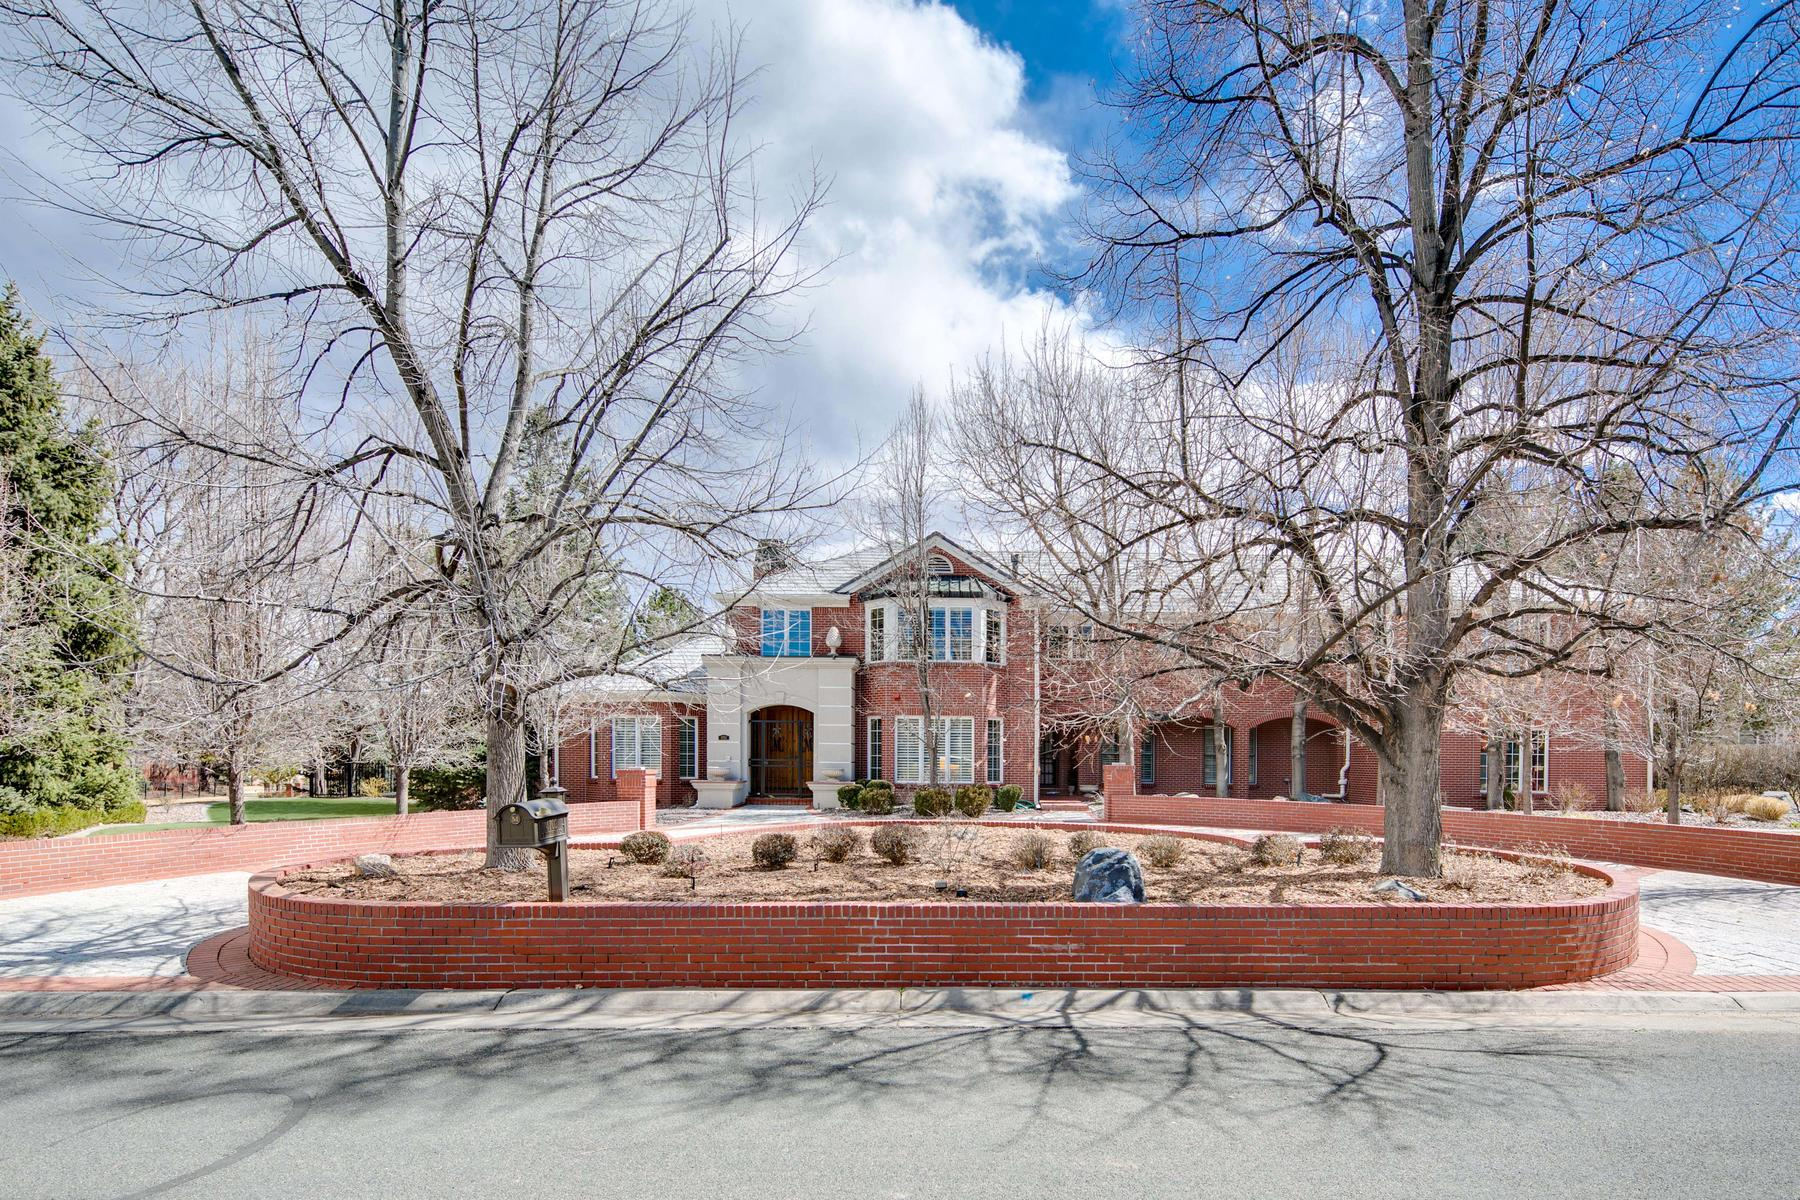 Single Family Home for Active at 4702 S. Elizabeth Court 4702 S. Elizabeth Ct. Cherry Hills Village, Colorado 80113 United States